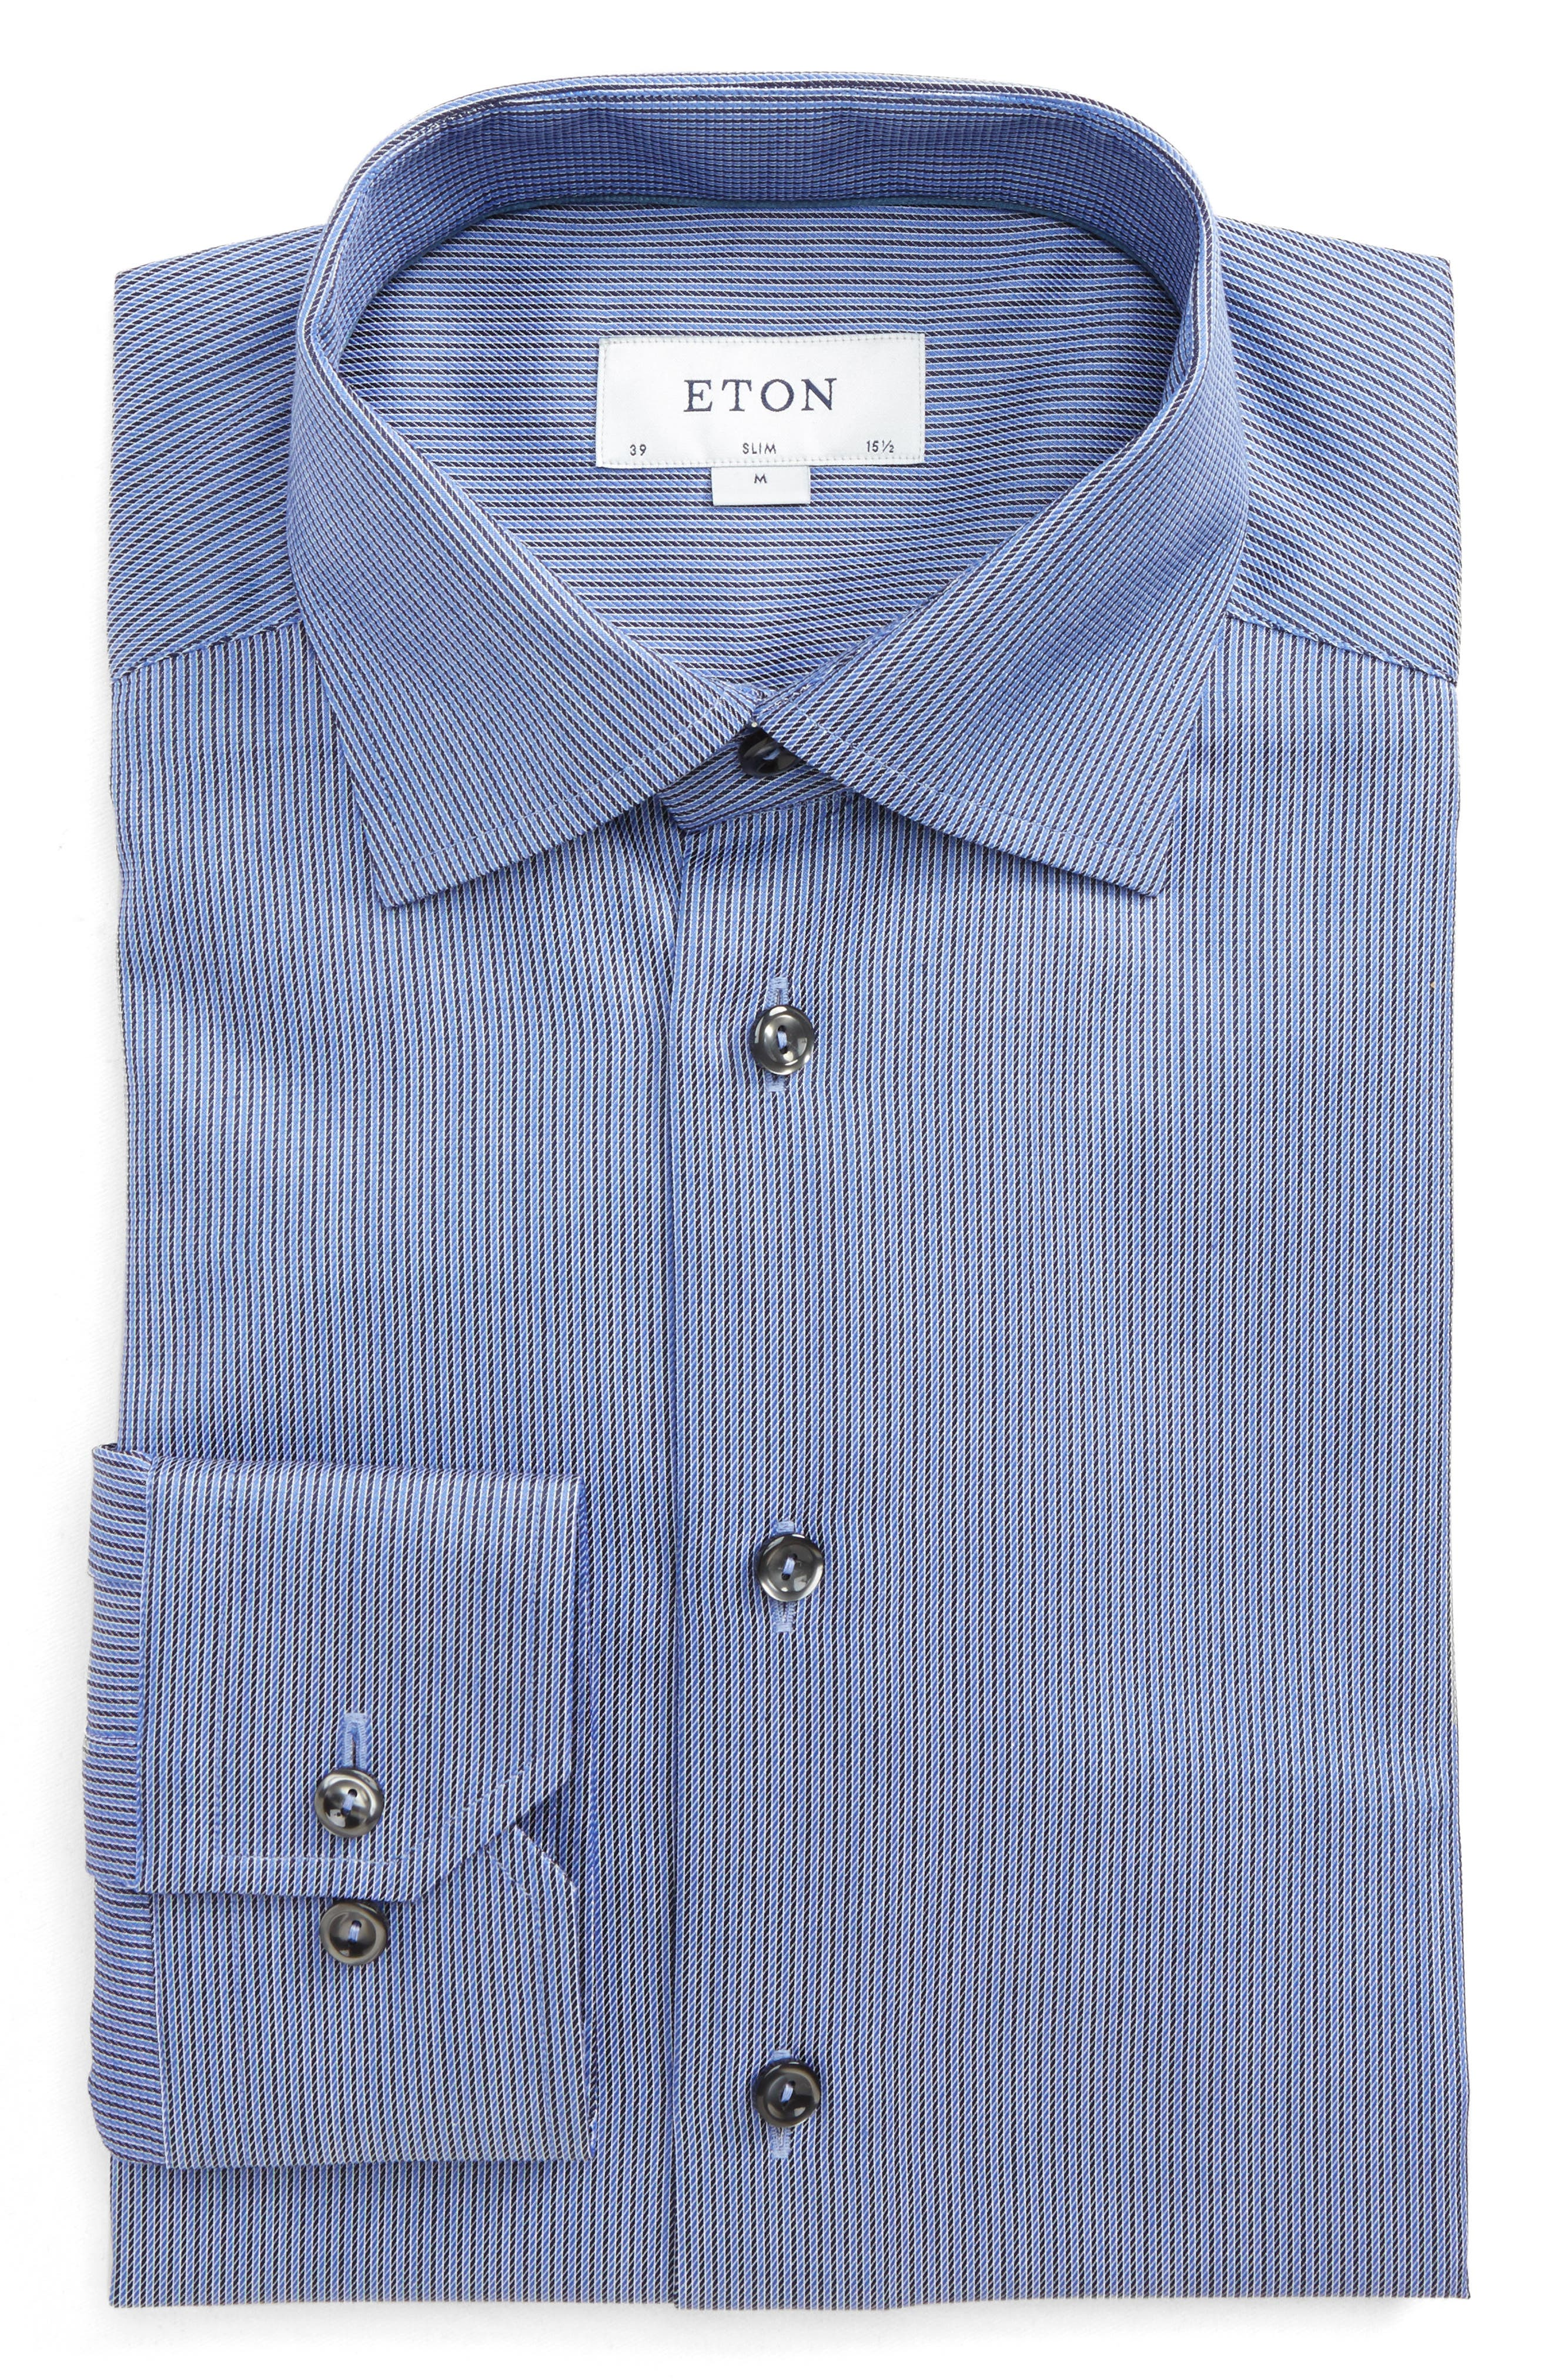 Eton Slim Fit Stripe Dress Shirt